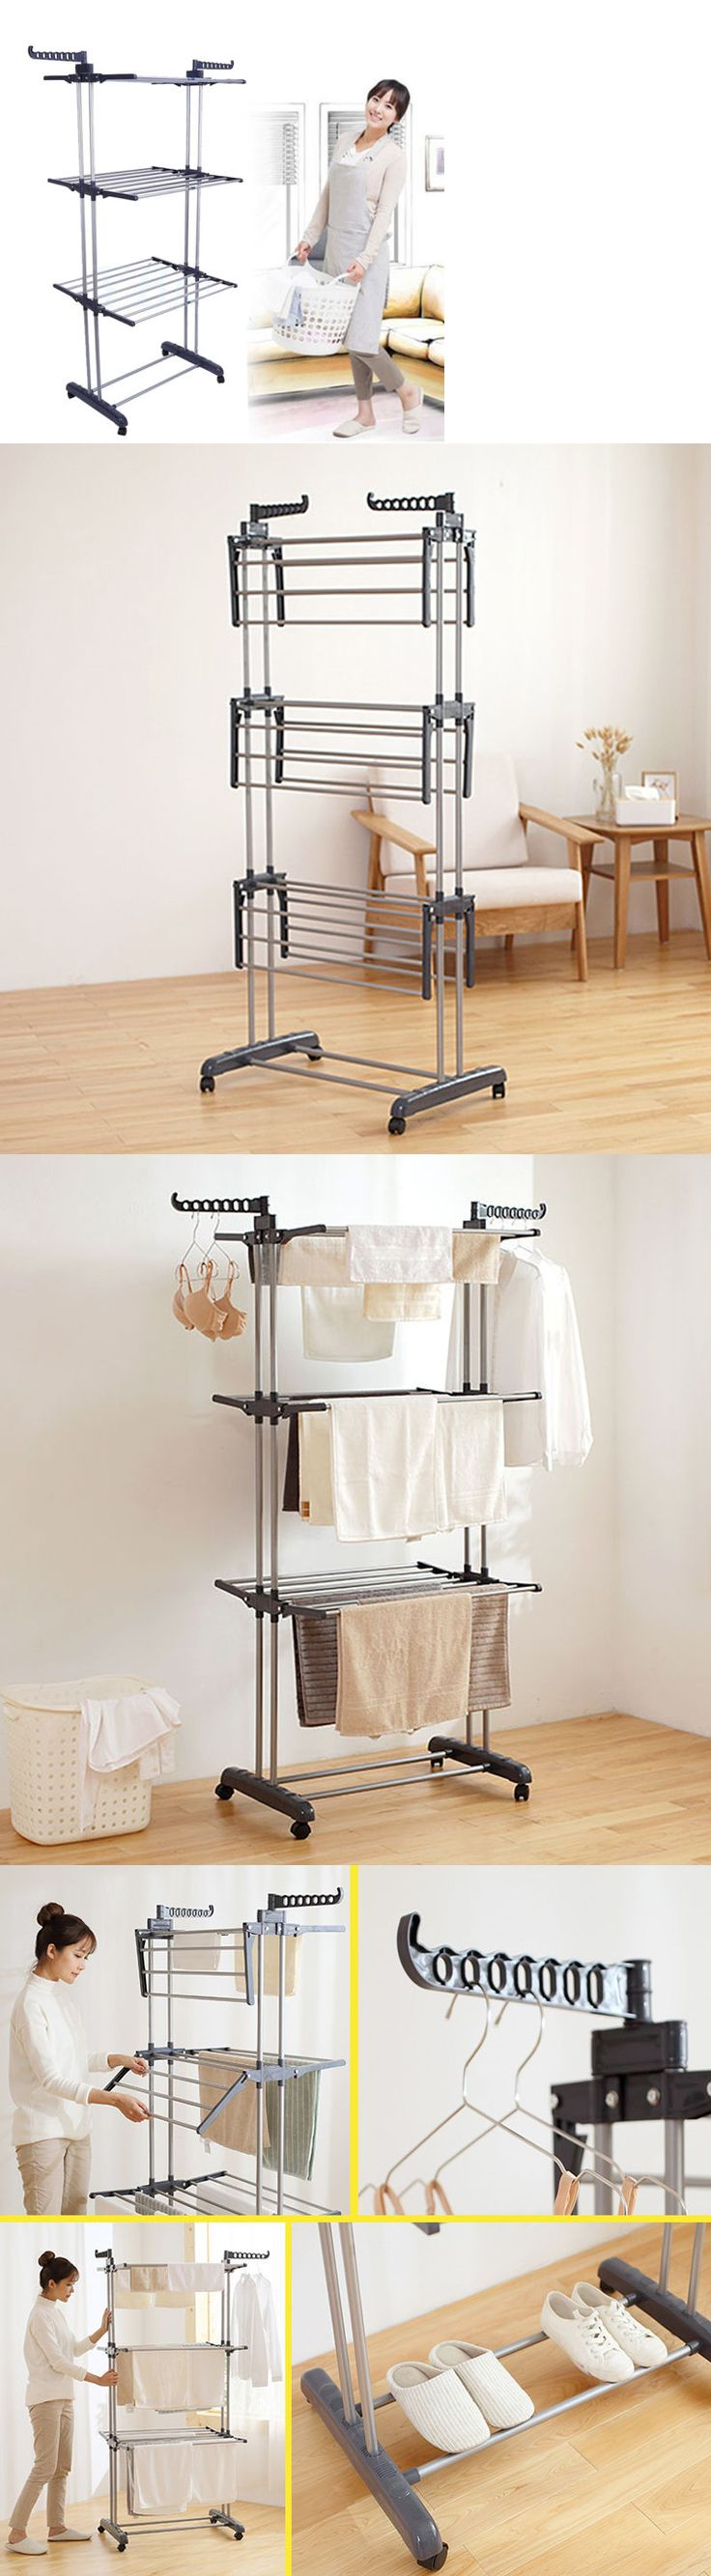 Clotheslines and Laundry Hangers 81241: 3Tier Stainless Laundry Organizer Folding Drying Rack Clothes Dryer Hanger Stand -> BUY IT NOW ONLY: $54.99 on eBay!